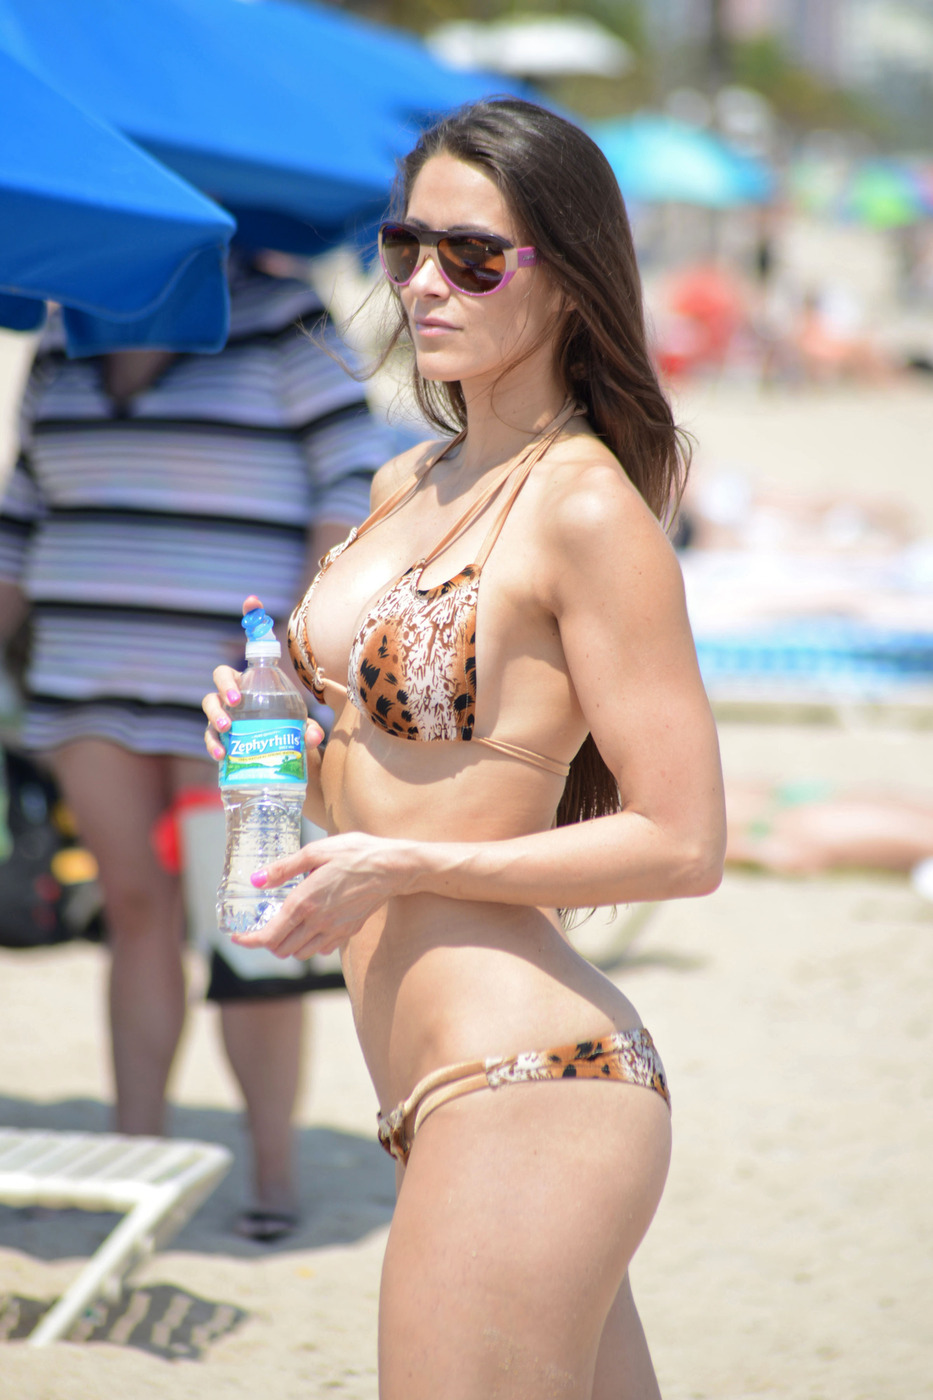 Anais Zanotti anais-zanotti-wearing-a-bikini-in-miami-10 | celebrity-slips